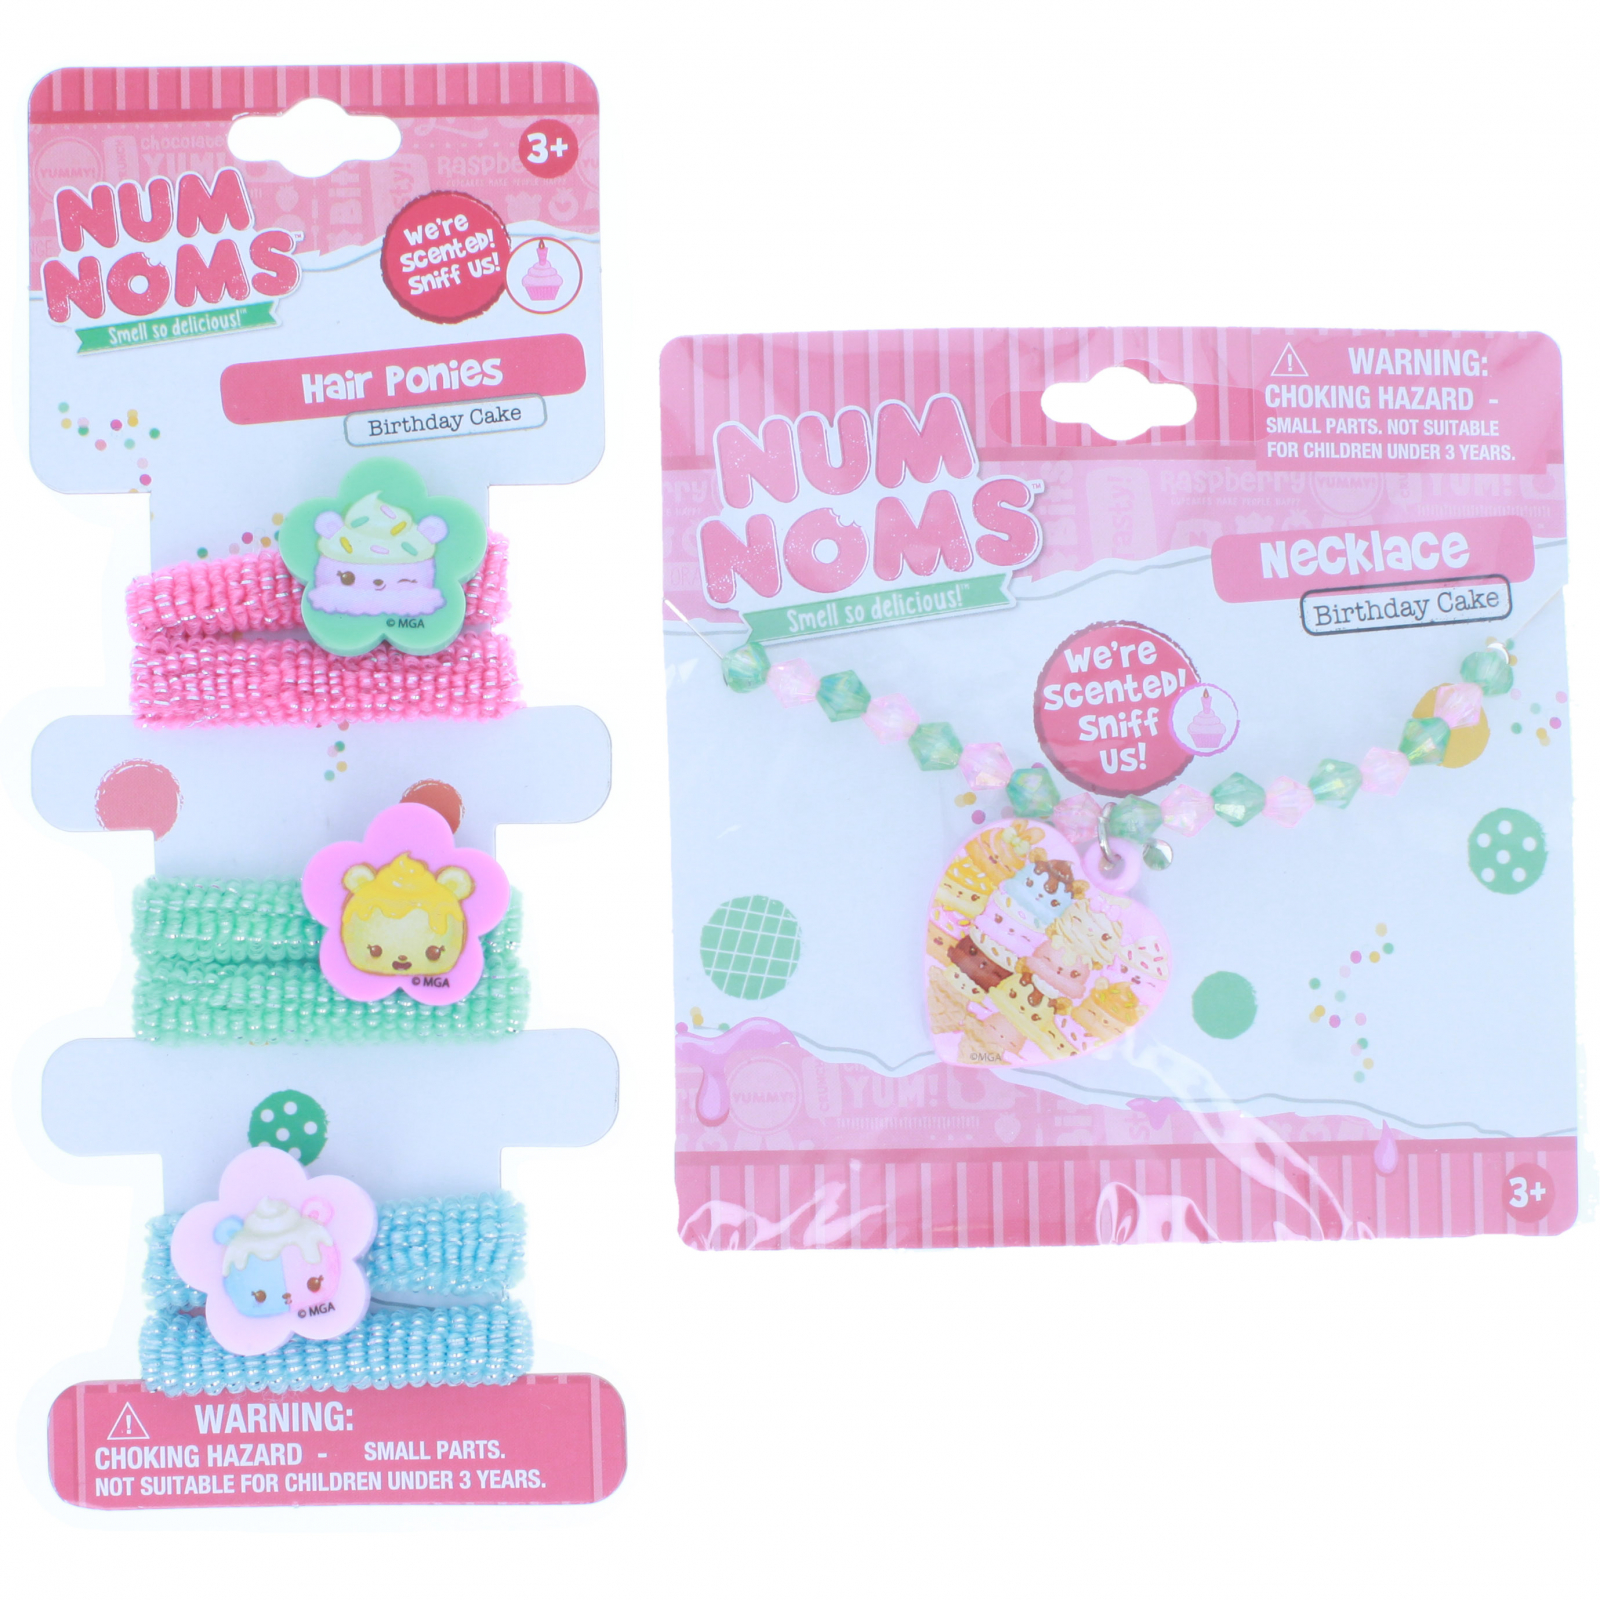 KidPlay Products - Num Noms Hair Tie and Necklace - Cake Scented